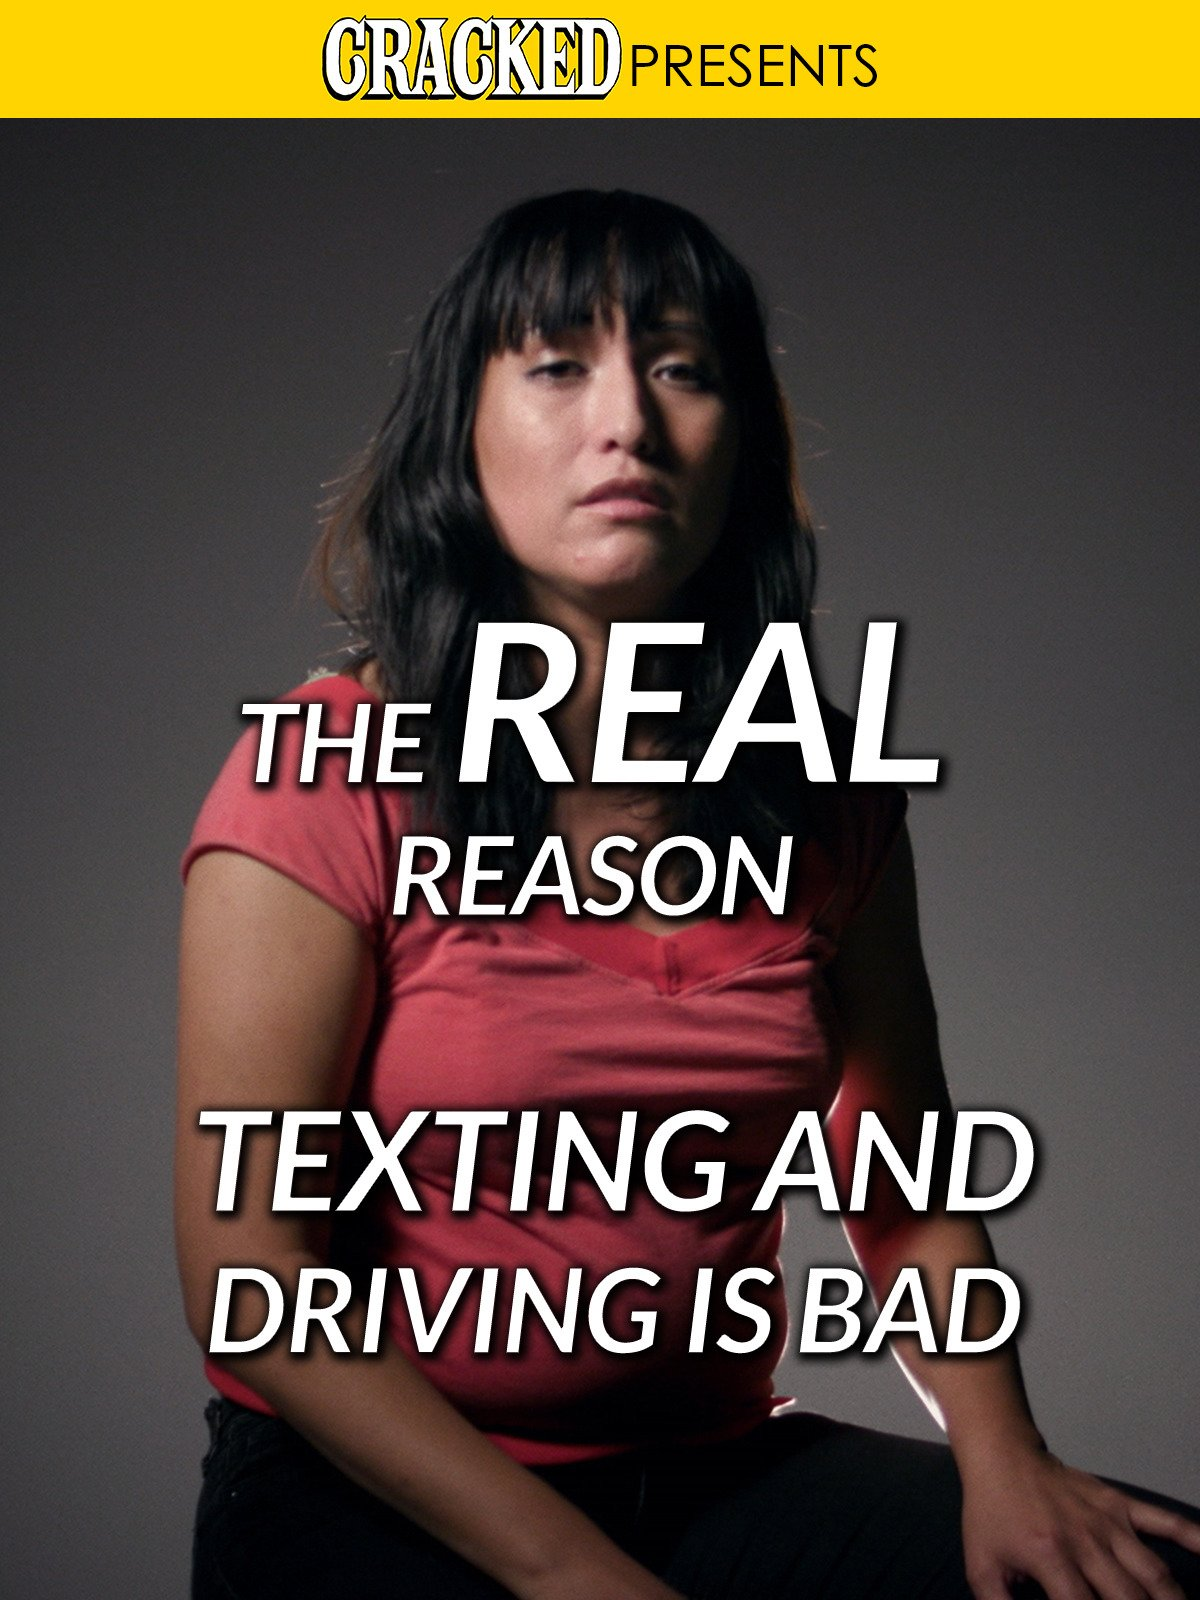 The Real Reason Texting And Driving Is Bad